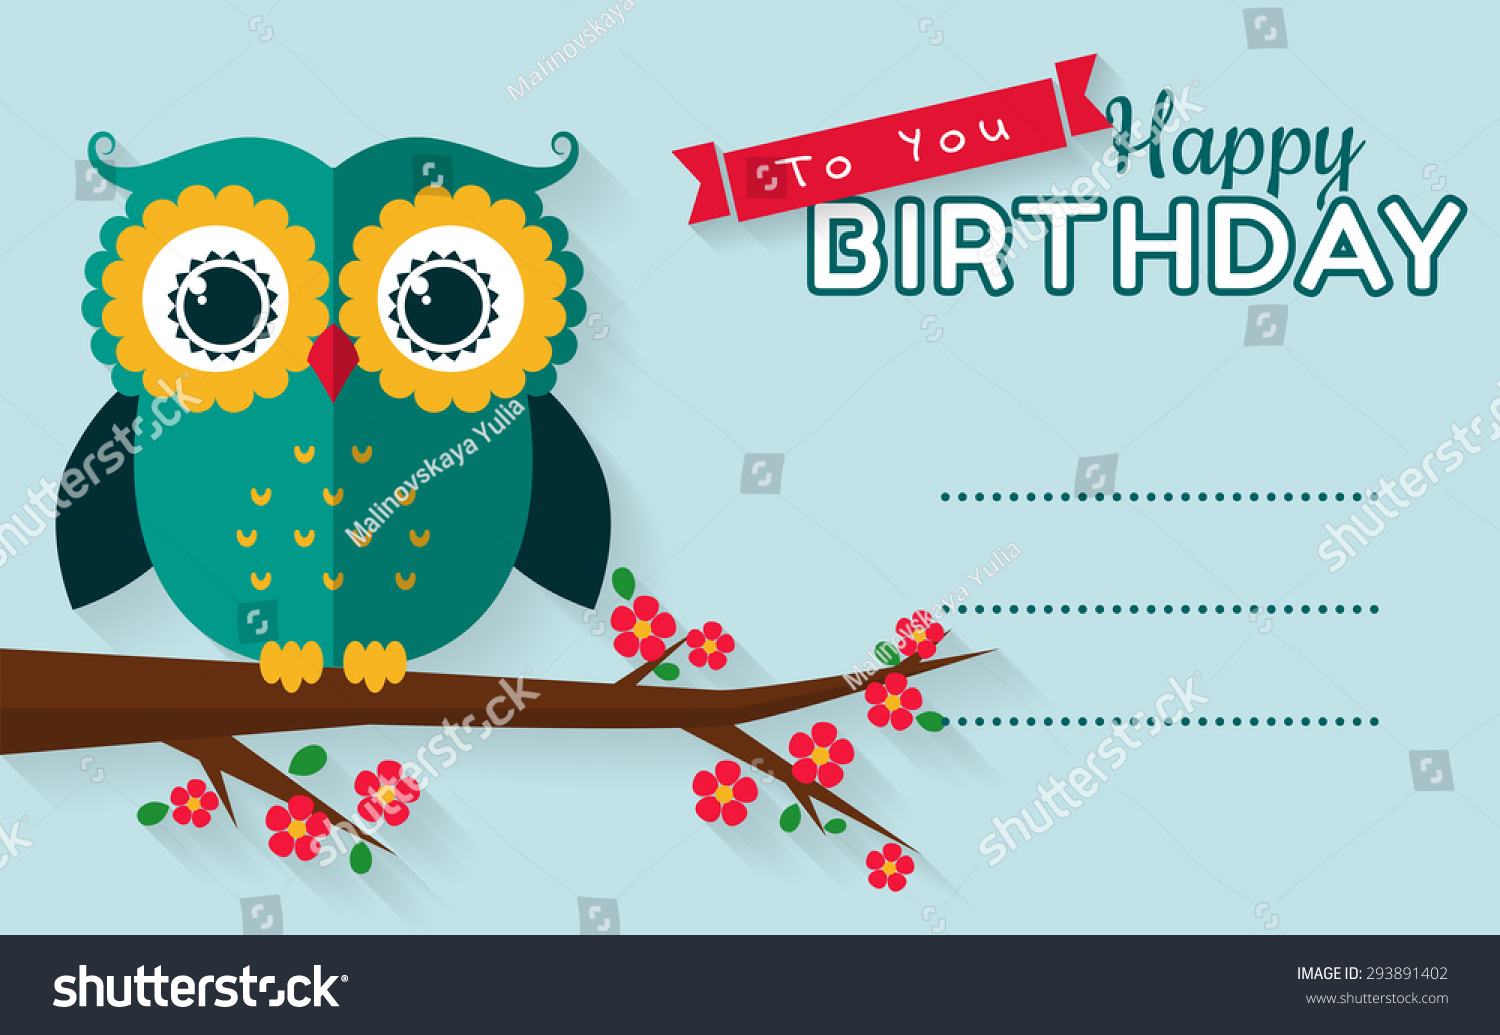 Happy Birthday You Greeting Card Cute Stock Vector 293891402